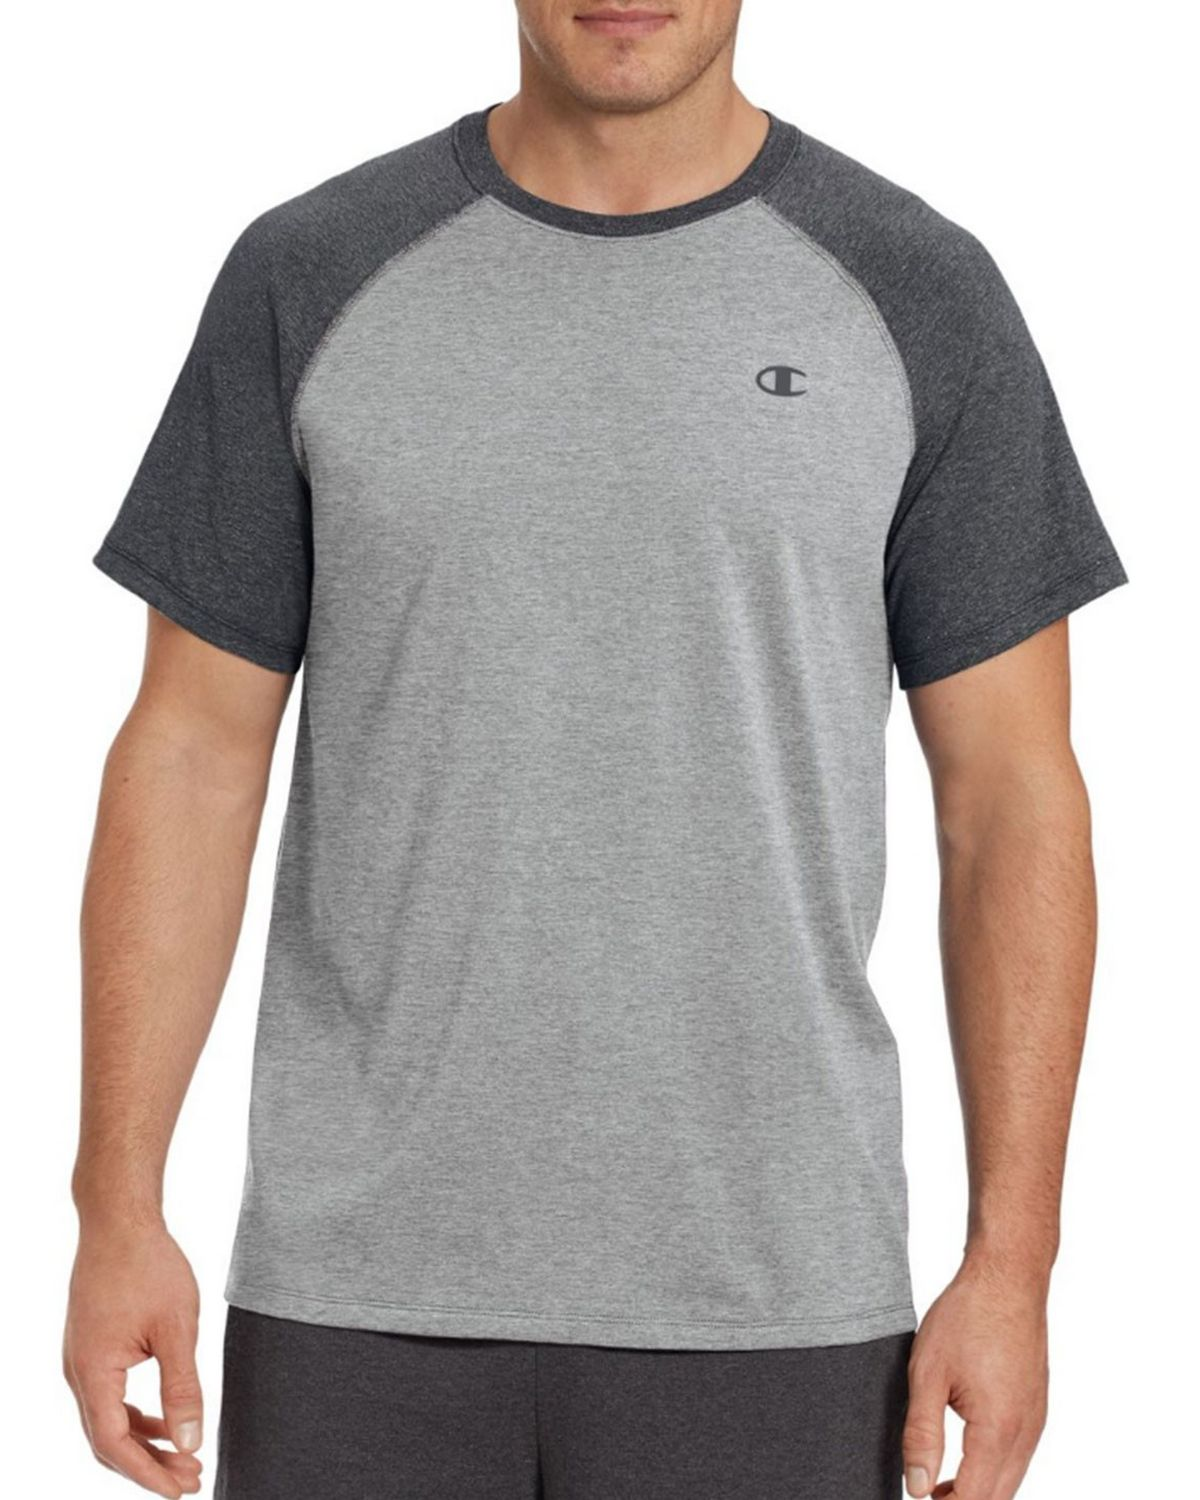 Champion T8822 Vapor Mens Tee - Surf The Web Heather/Oxford Grey - M T8822